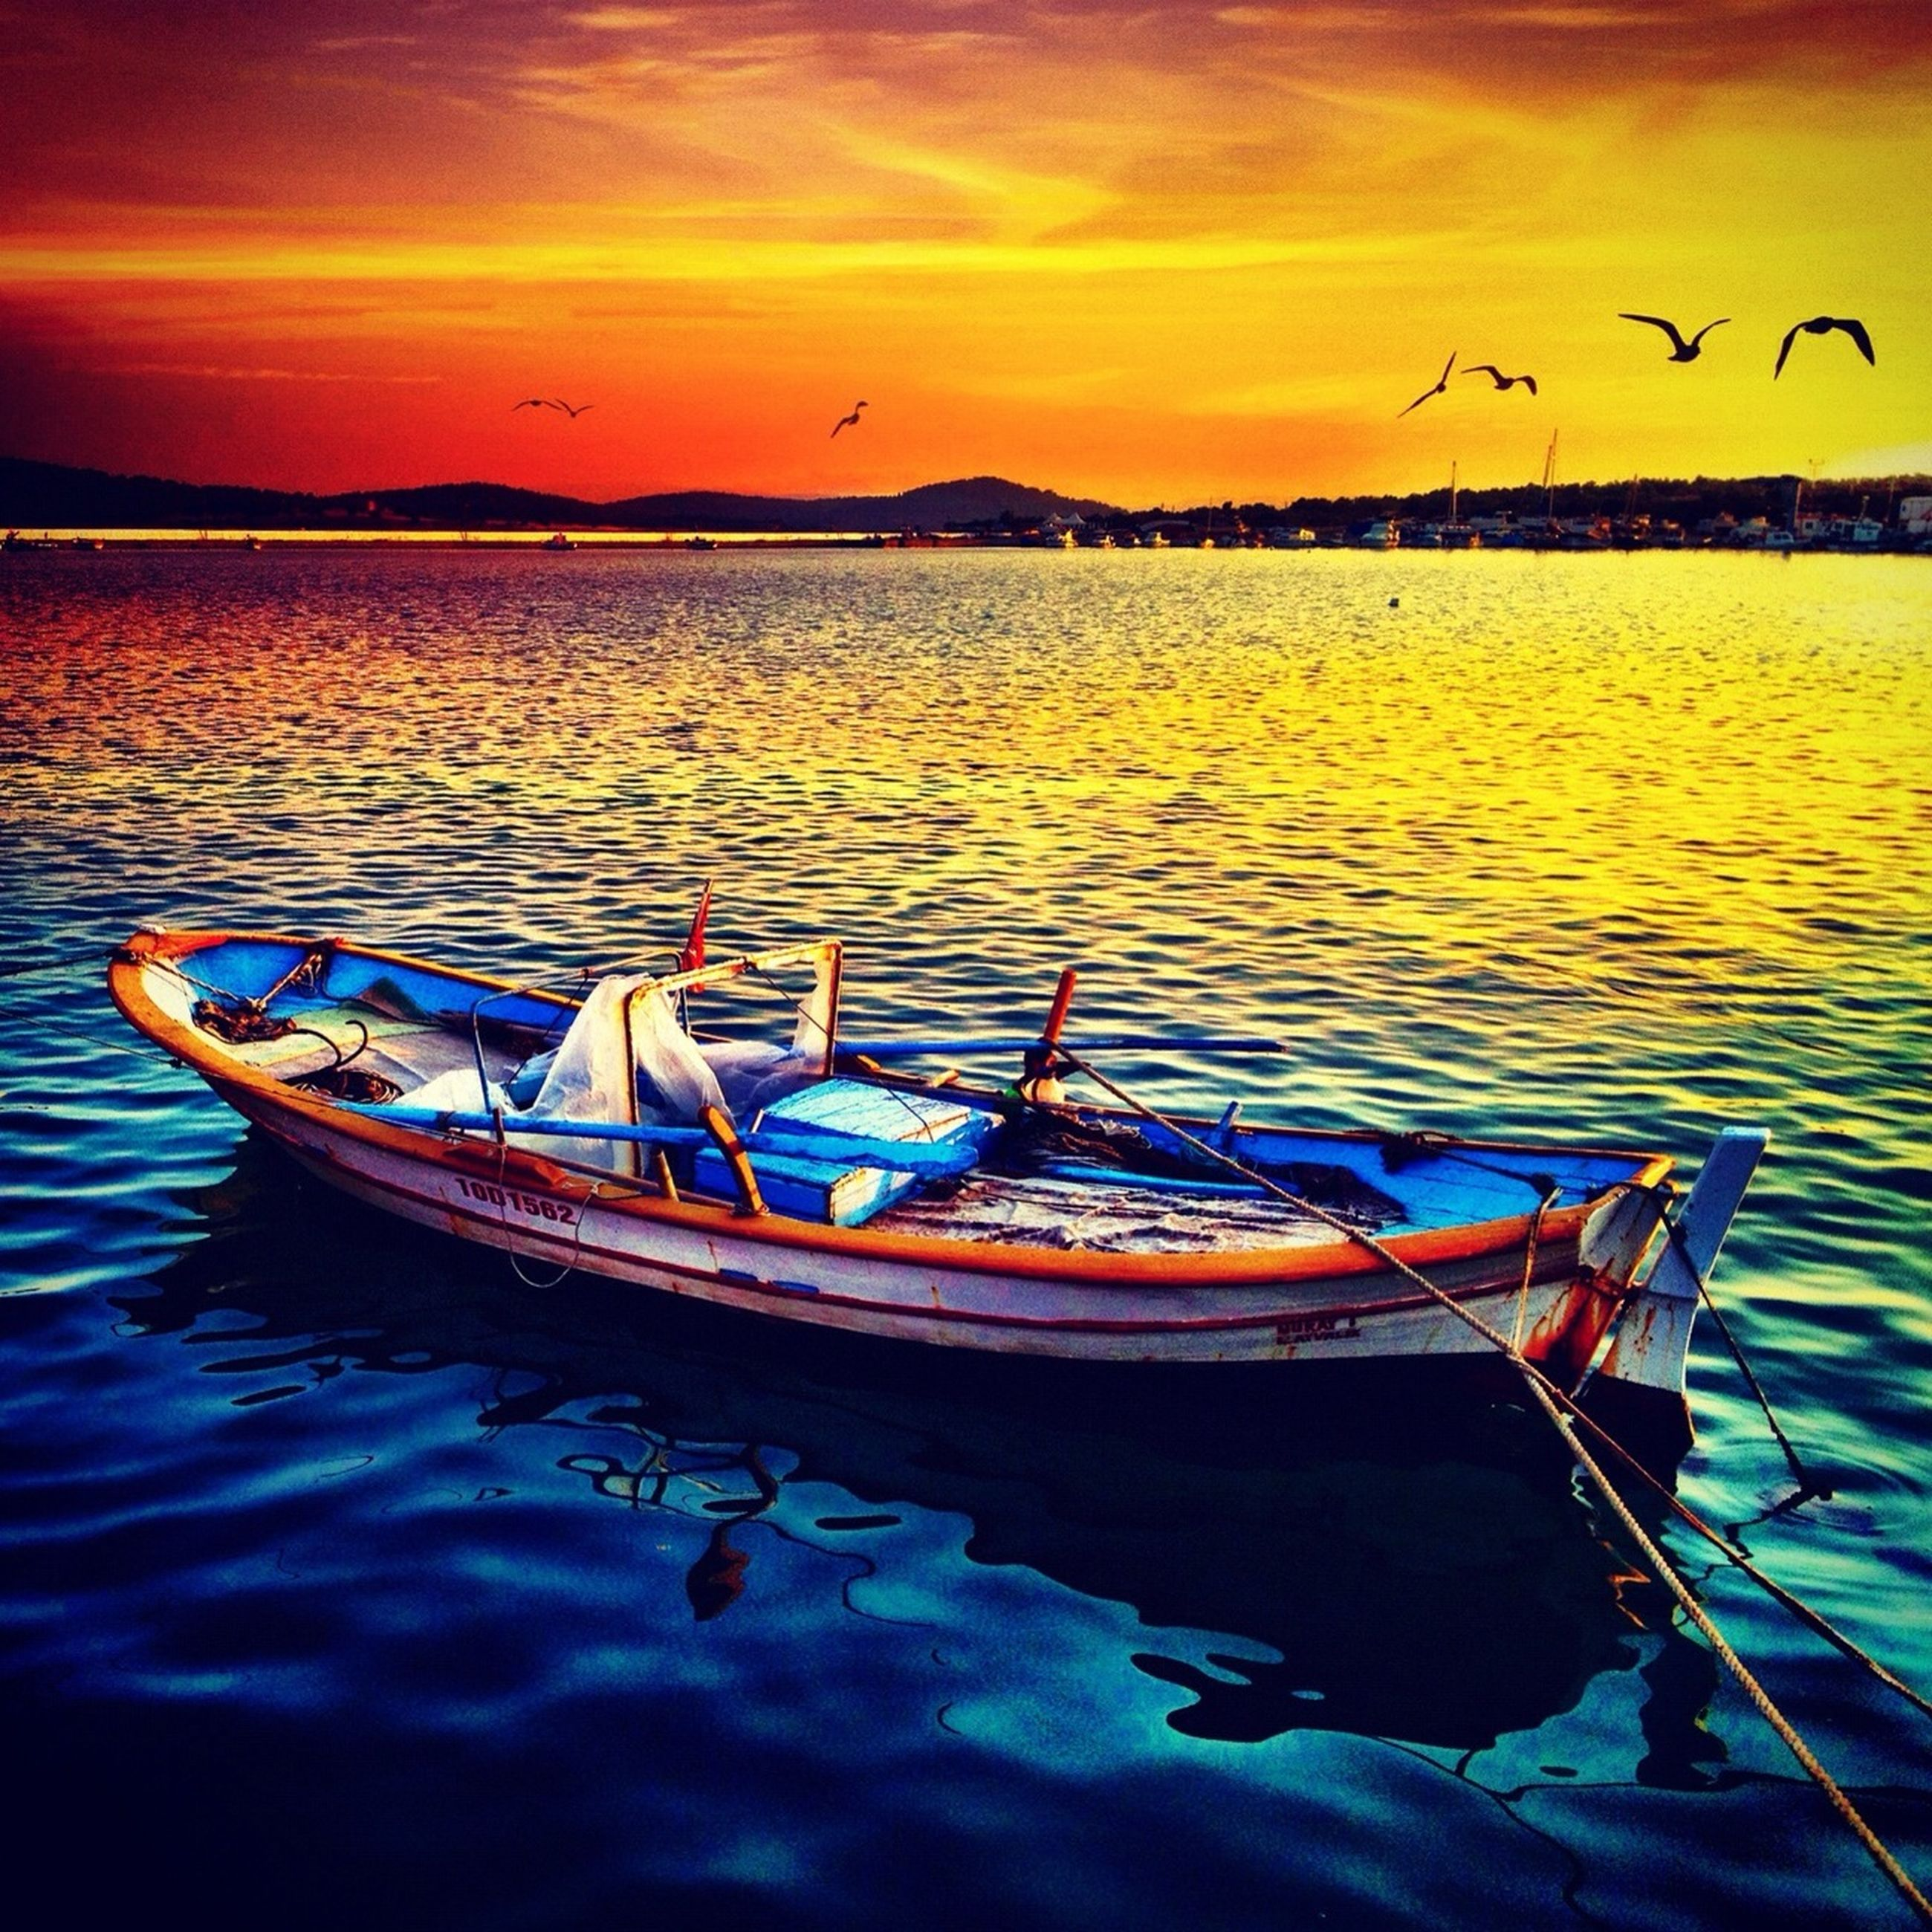 nautical vessel, boat, transportation, water, moored, mode of transport, sunset, reflection, tranquil scene, tranquility, sky, waterfront, scenics, lake, nature, travel, sea, beauty in nature, idyllic, dusk